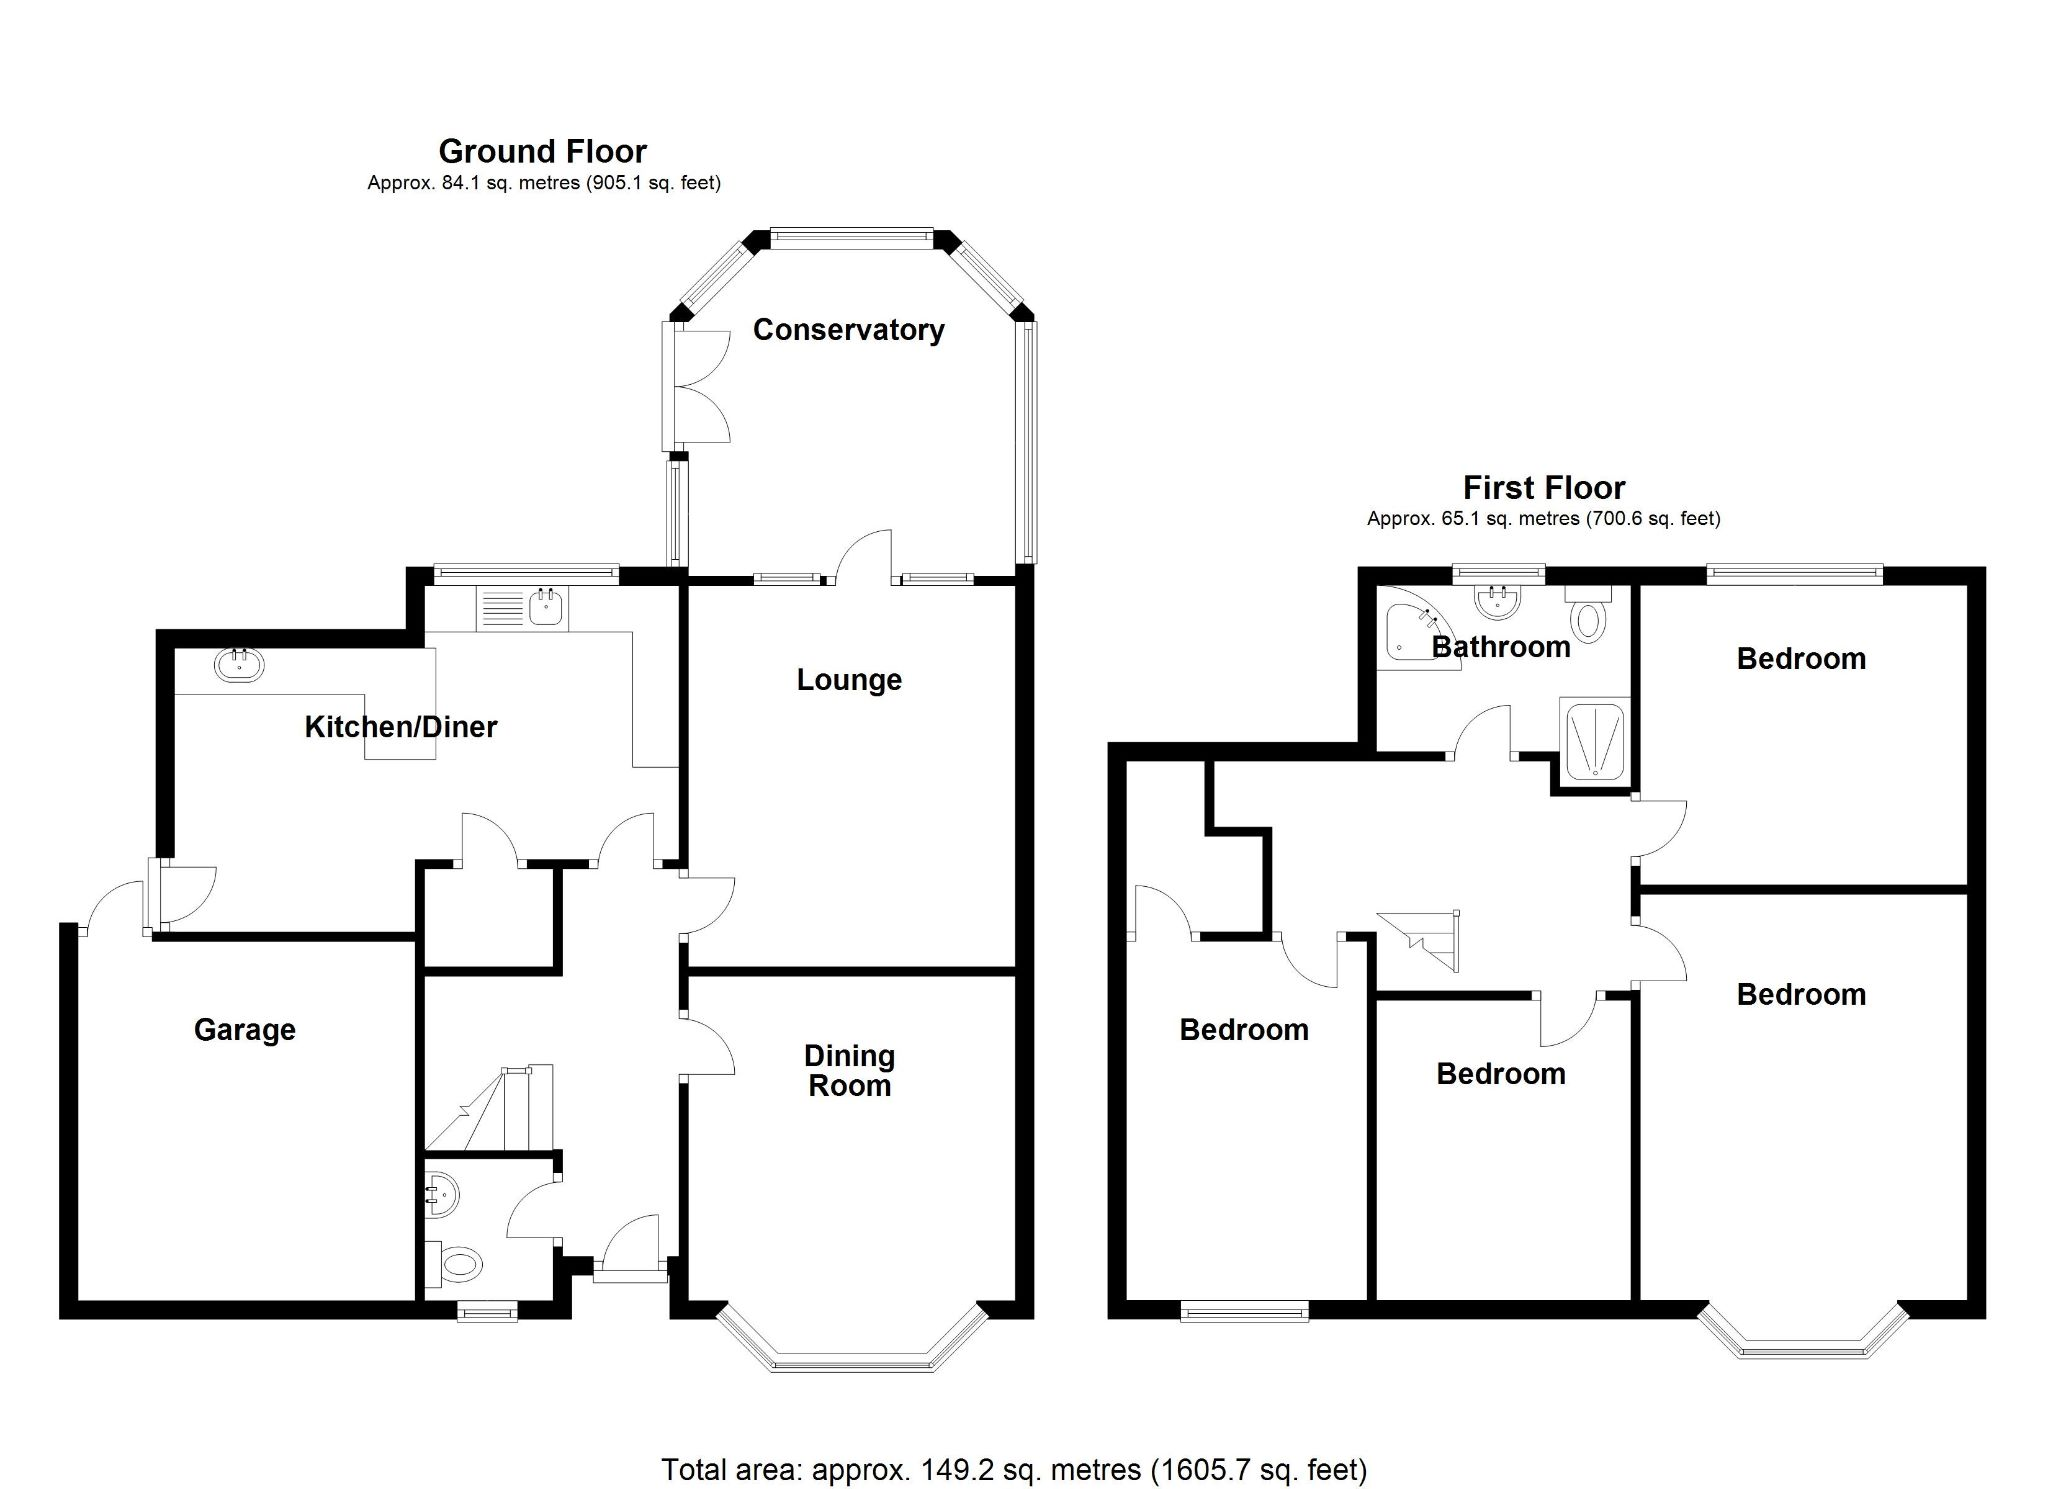 4 bedroom semi-detached house SSTC in Solihull - Floorplan 1.